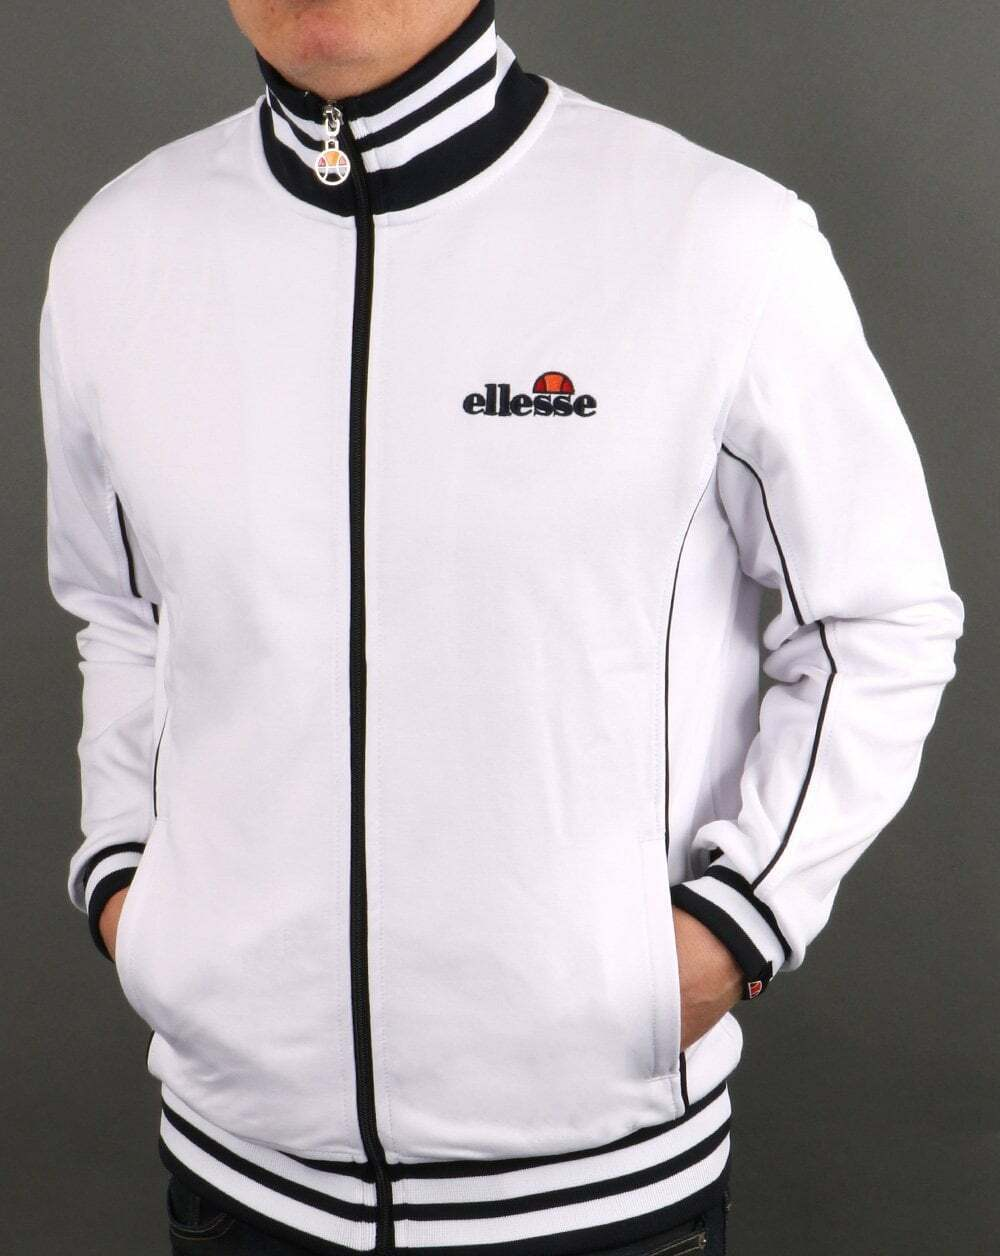 Ellesse Milano Track Top in White - retro tracksuit jacket SALE